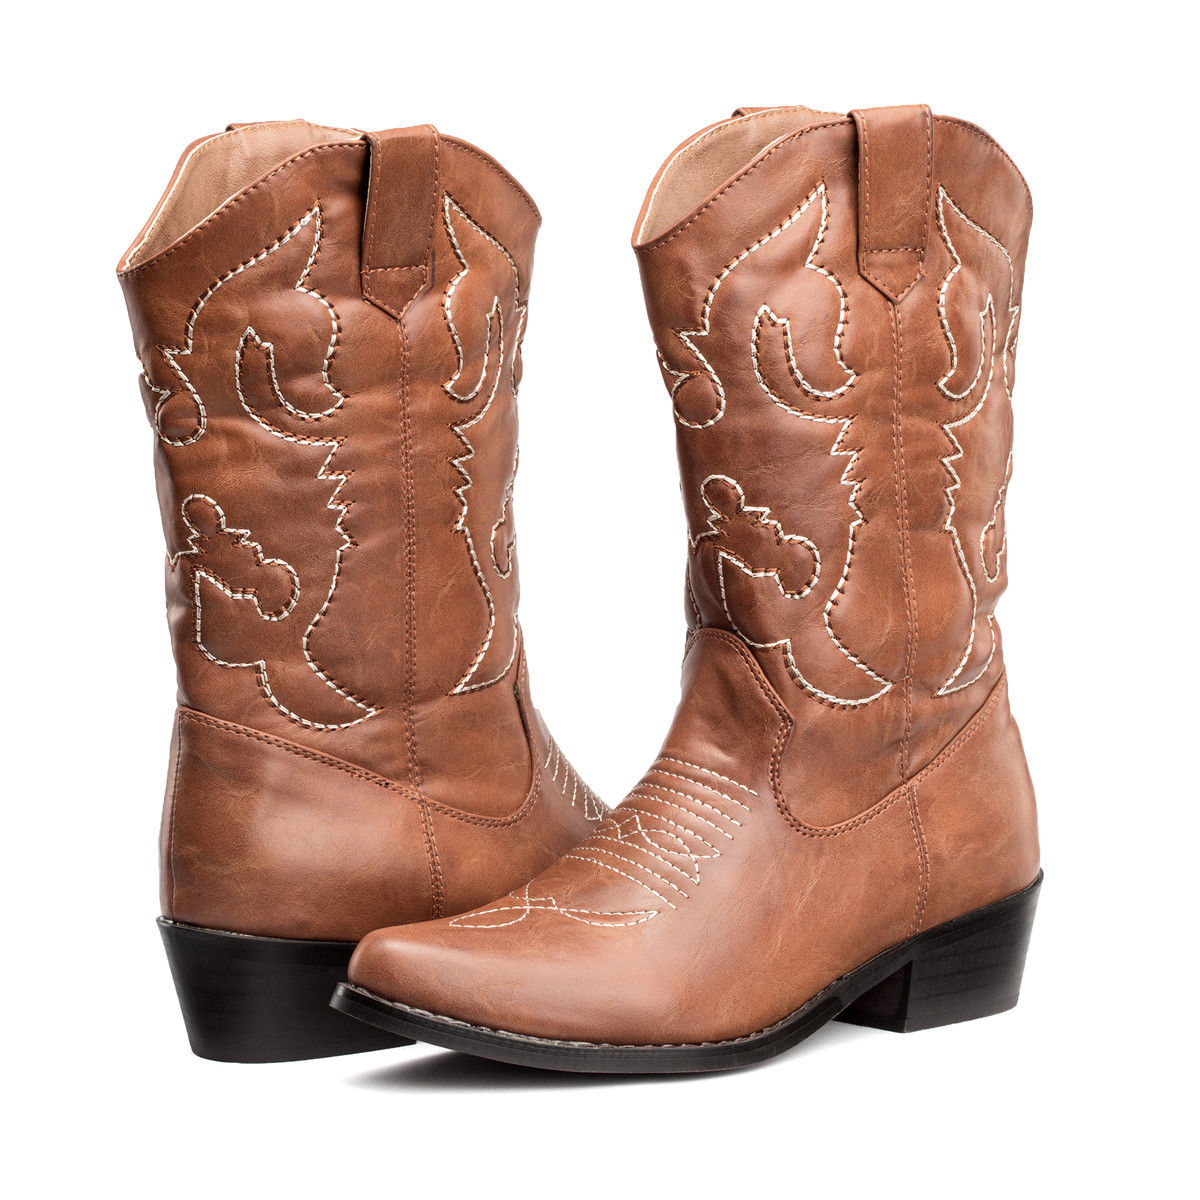 US FREE SHIP SheSole Womens Winter Cowboy Boots Mid Calf Wedding Shoes Size 611  eBay